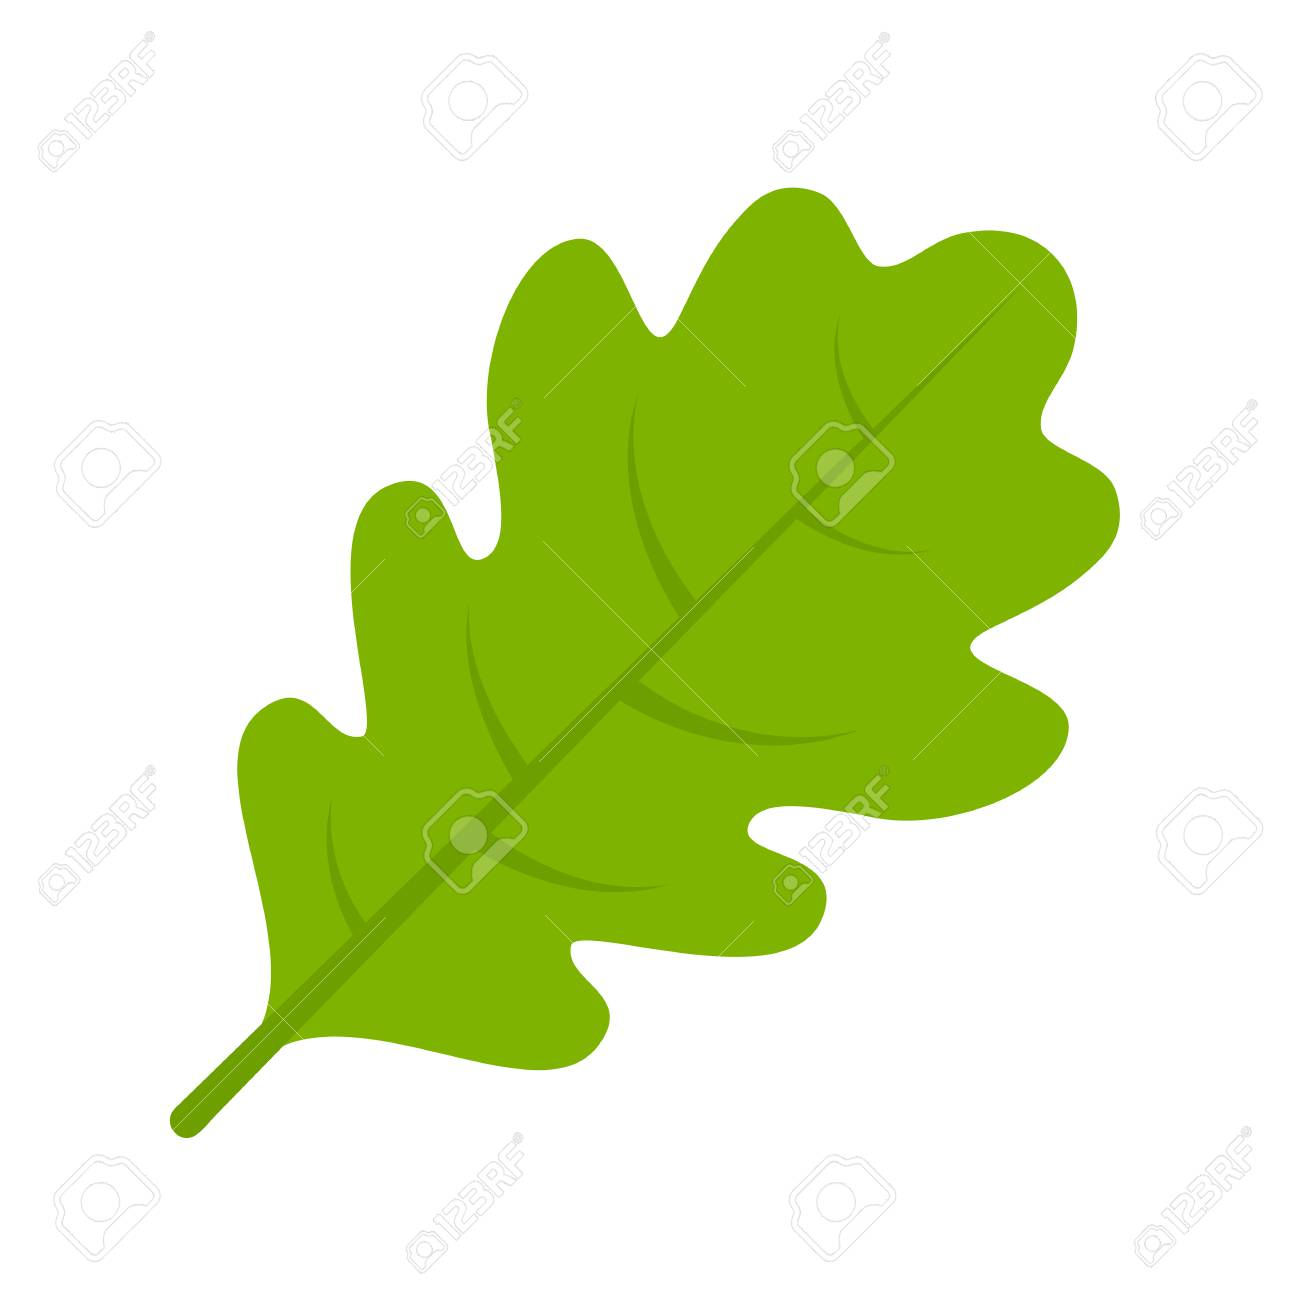 green oak leaf vector illustration royalty free cliparts vectors rh 123rf com bur oak leaf vector oak leaf wreath vector